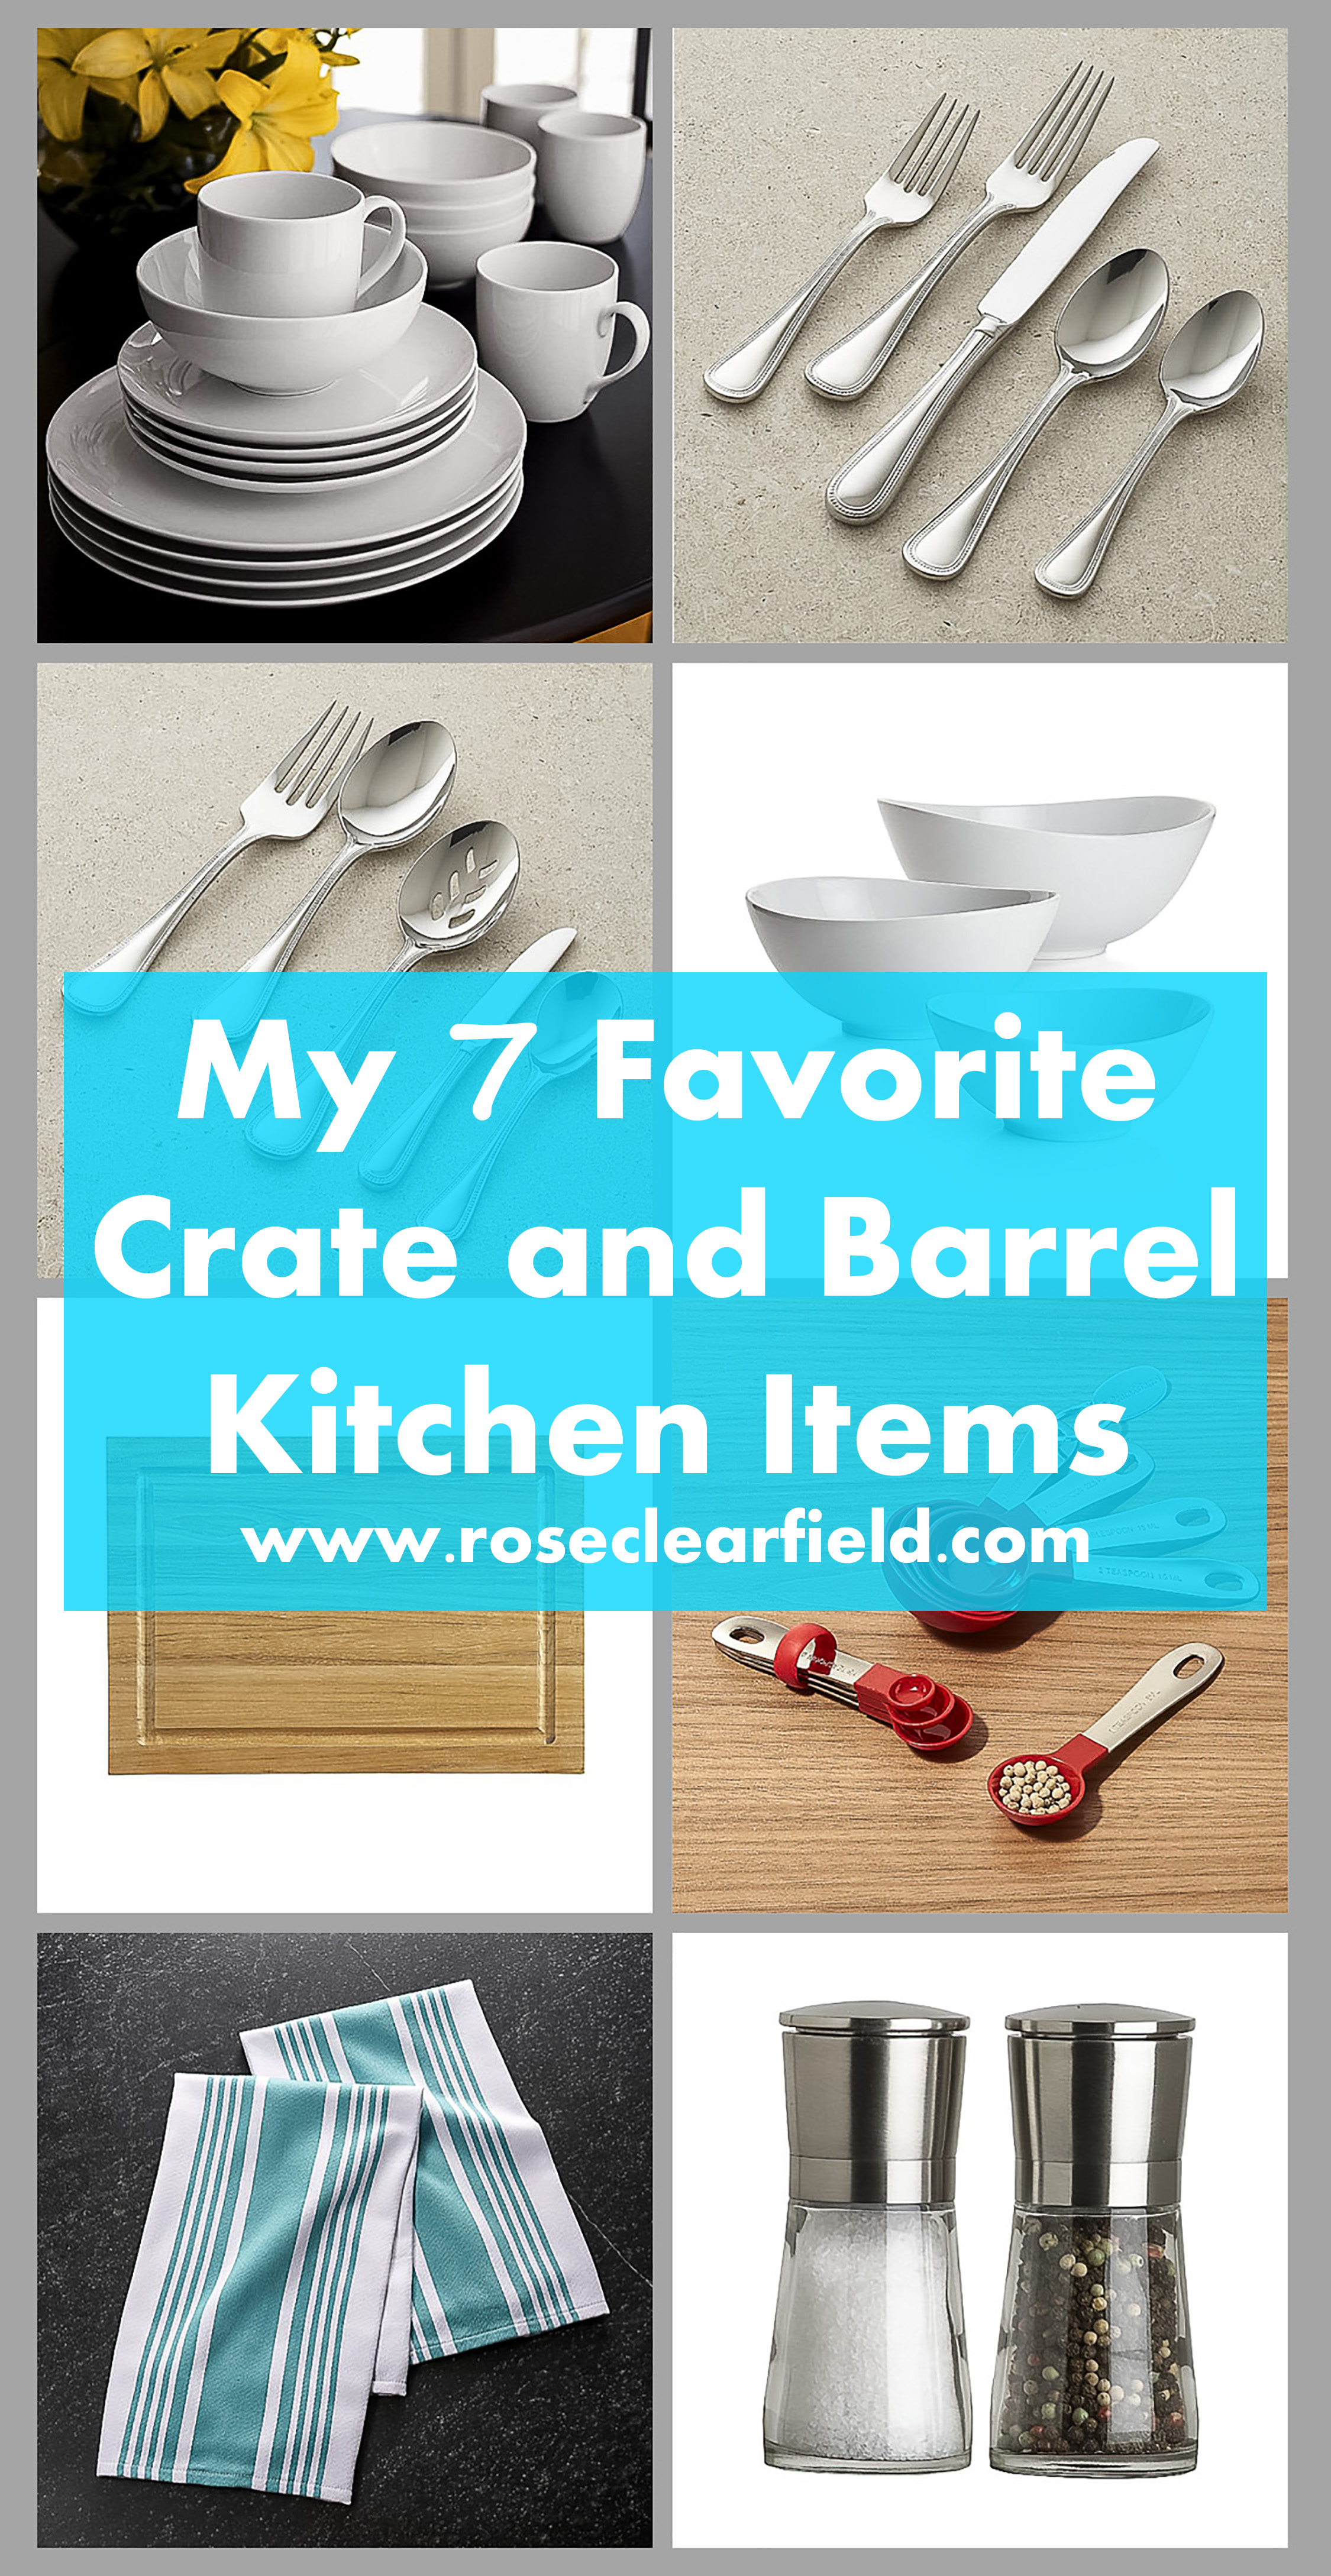 My 7 Favorite Staple Crate and Barrel Kitchen Items | https://www.roseclearfield.com